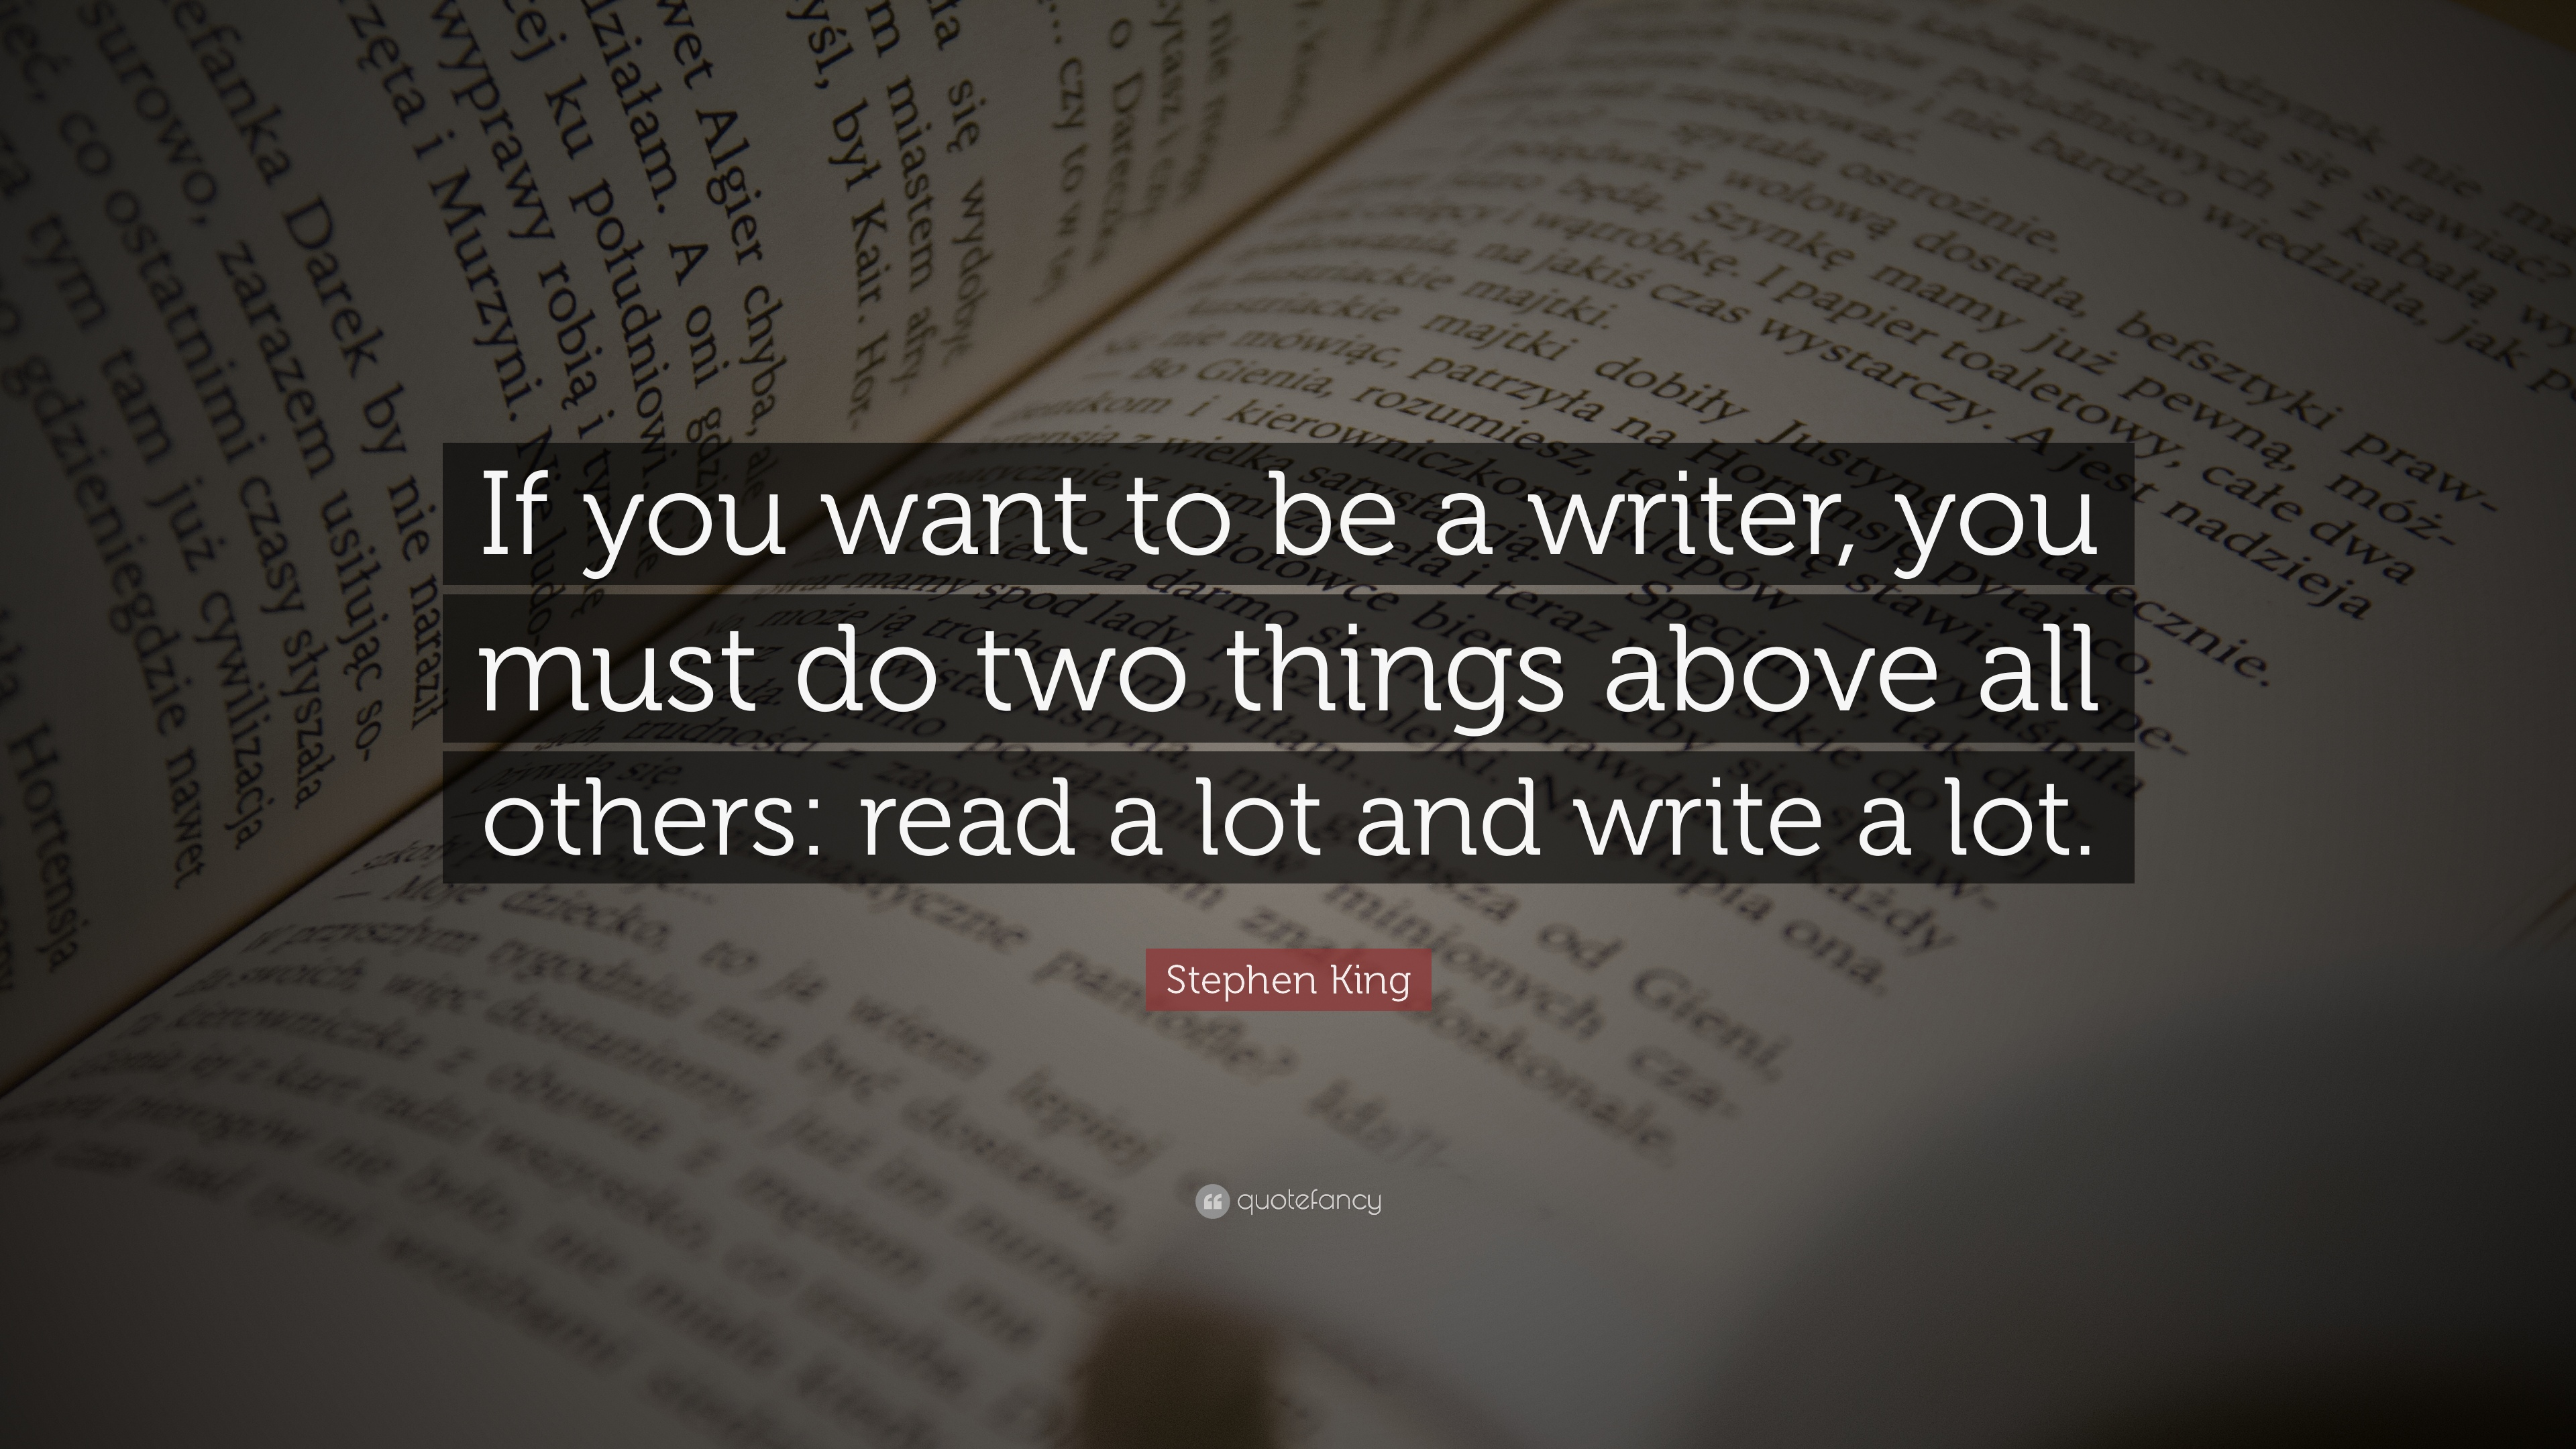 quotes about writing (57 wallpapers) - quotefancy